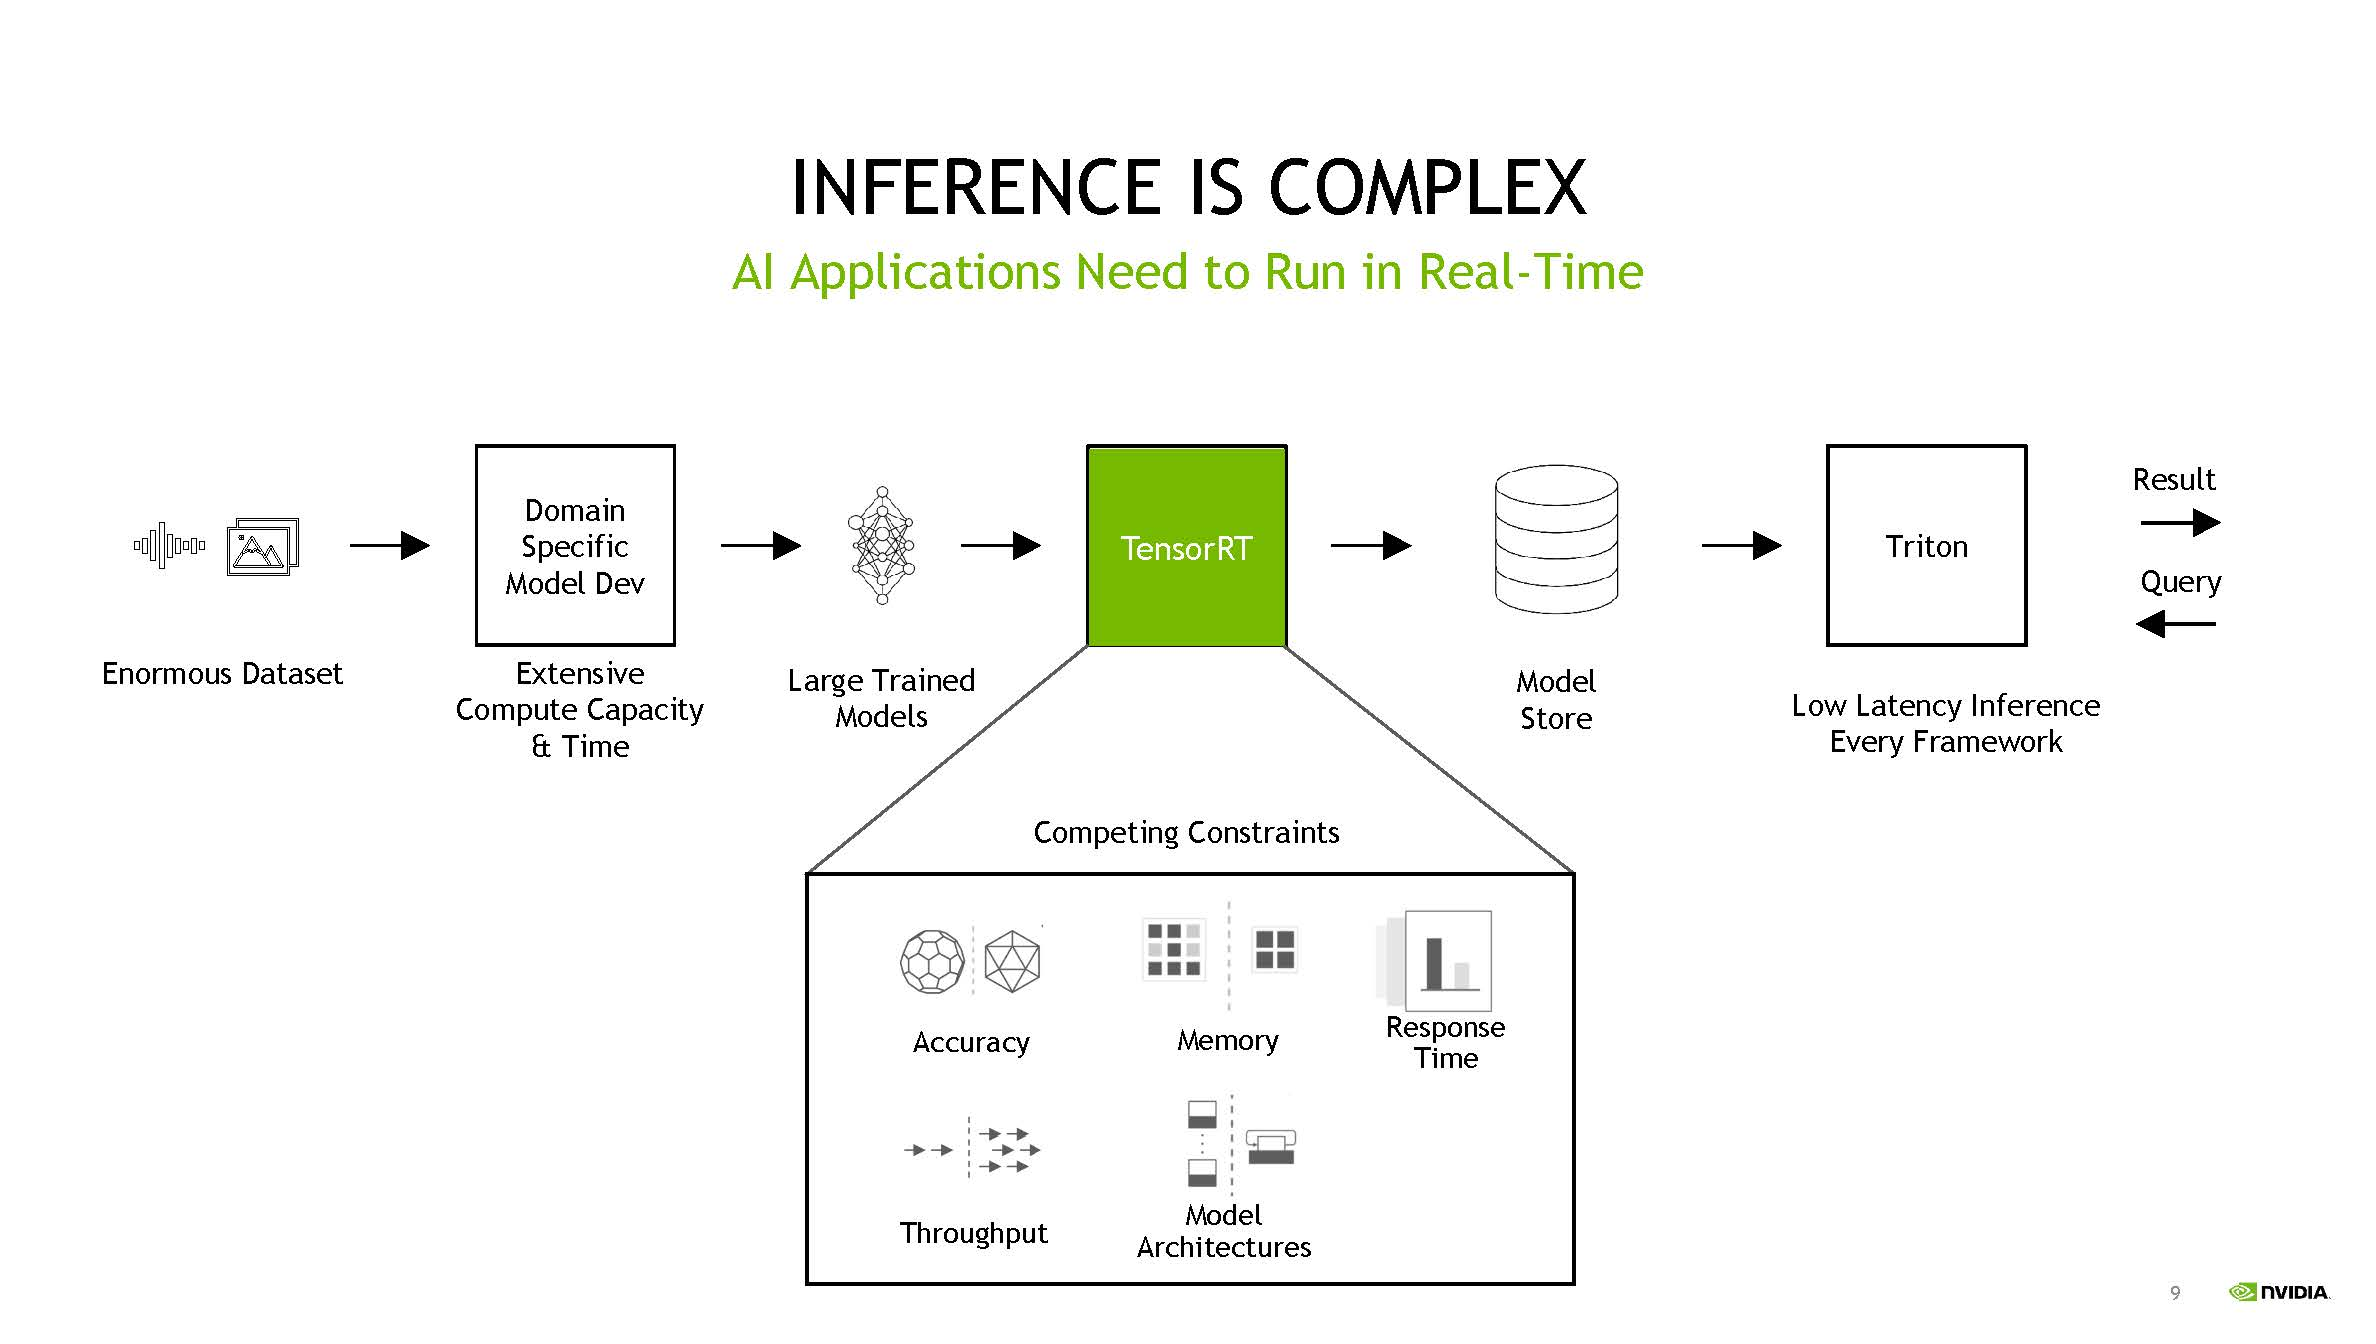 NVIDIA TensorRT 8 And RecSys Inference Is Complex